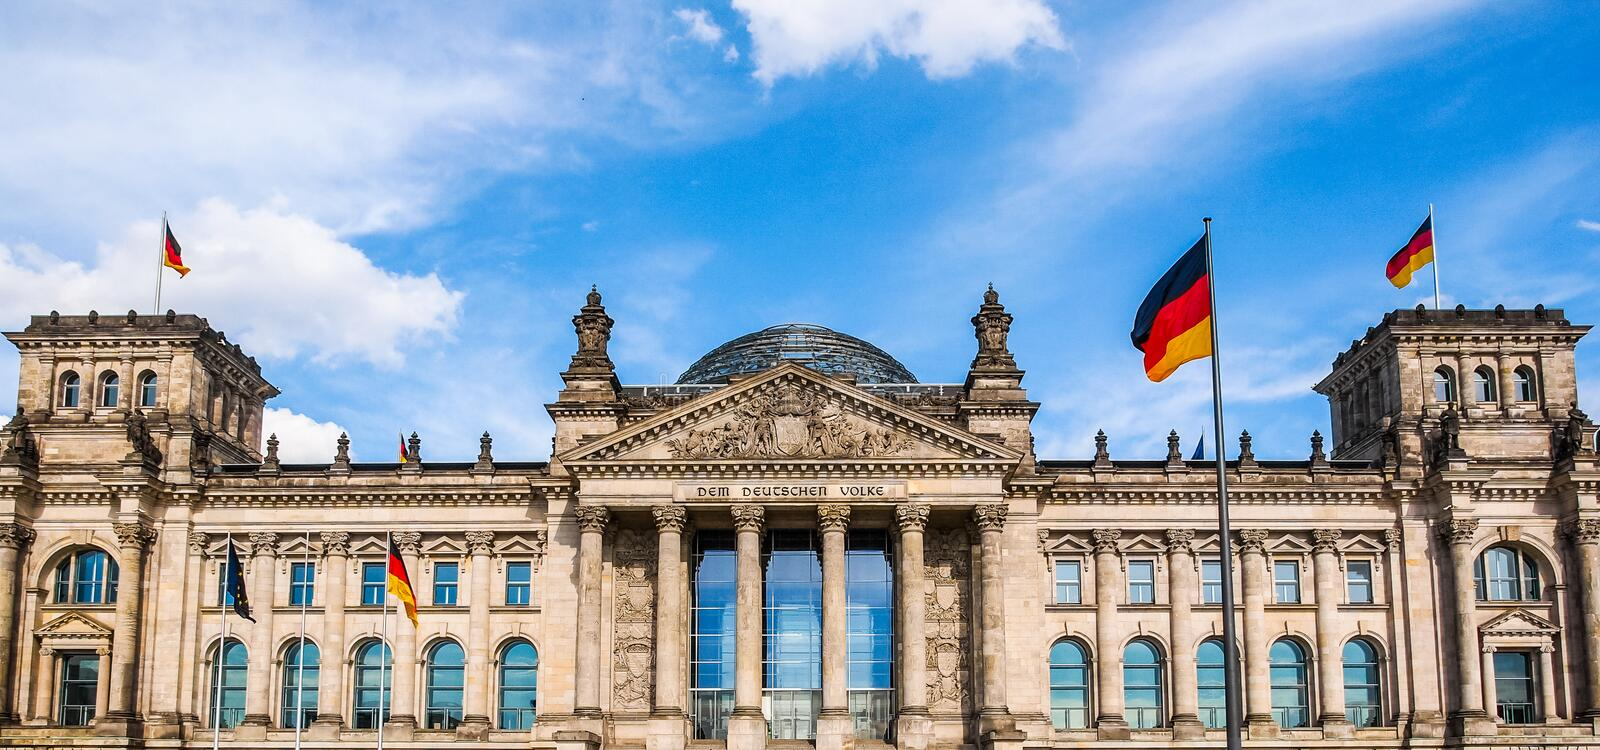 Reichstag in Berlin. Reichstag houses of parliament in Berlin, Germany - Dem Deutschen Volke means To The German People stock photo